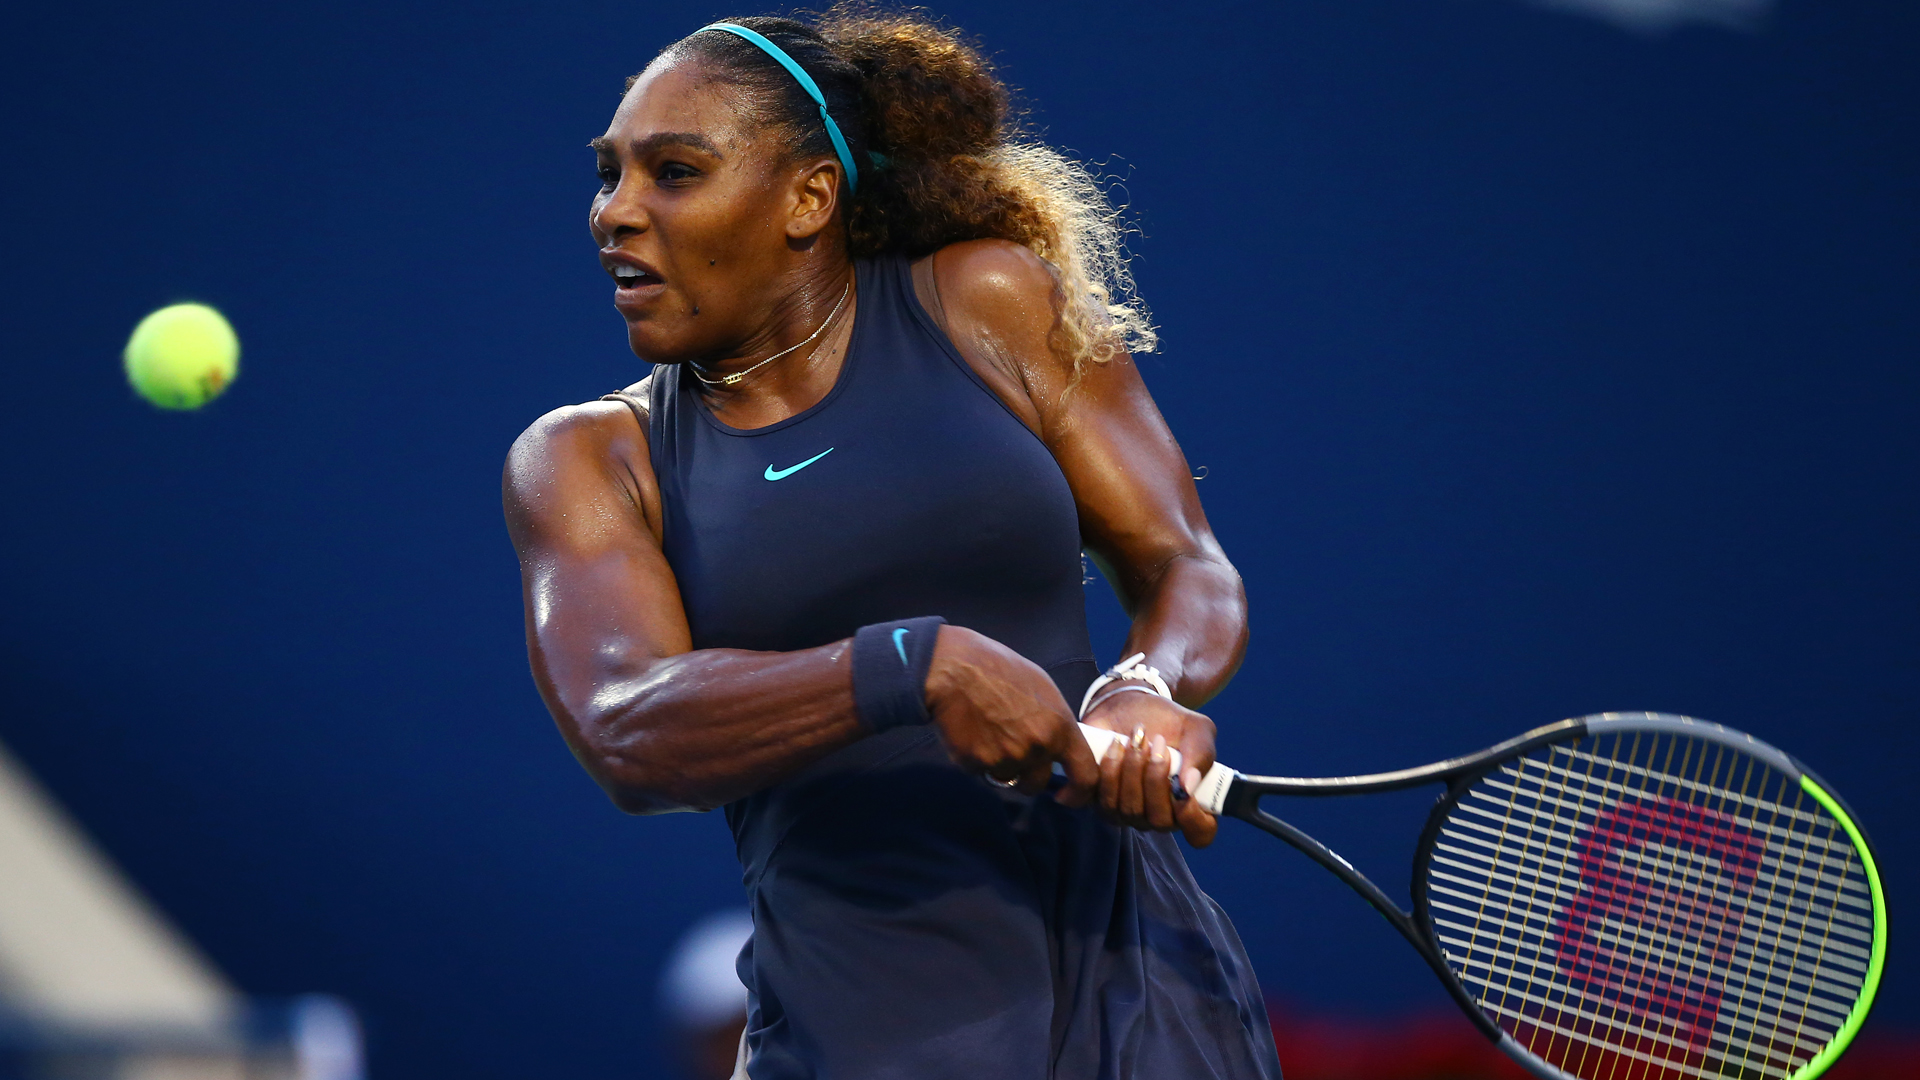 Serena Williams pulls out of Cincinnati due to back injury